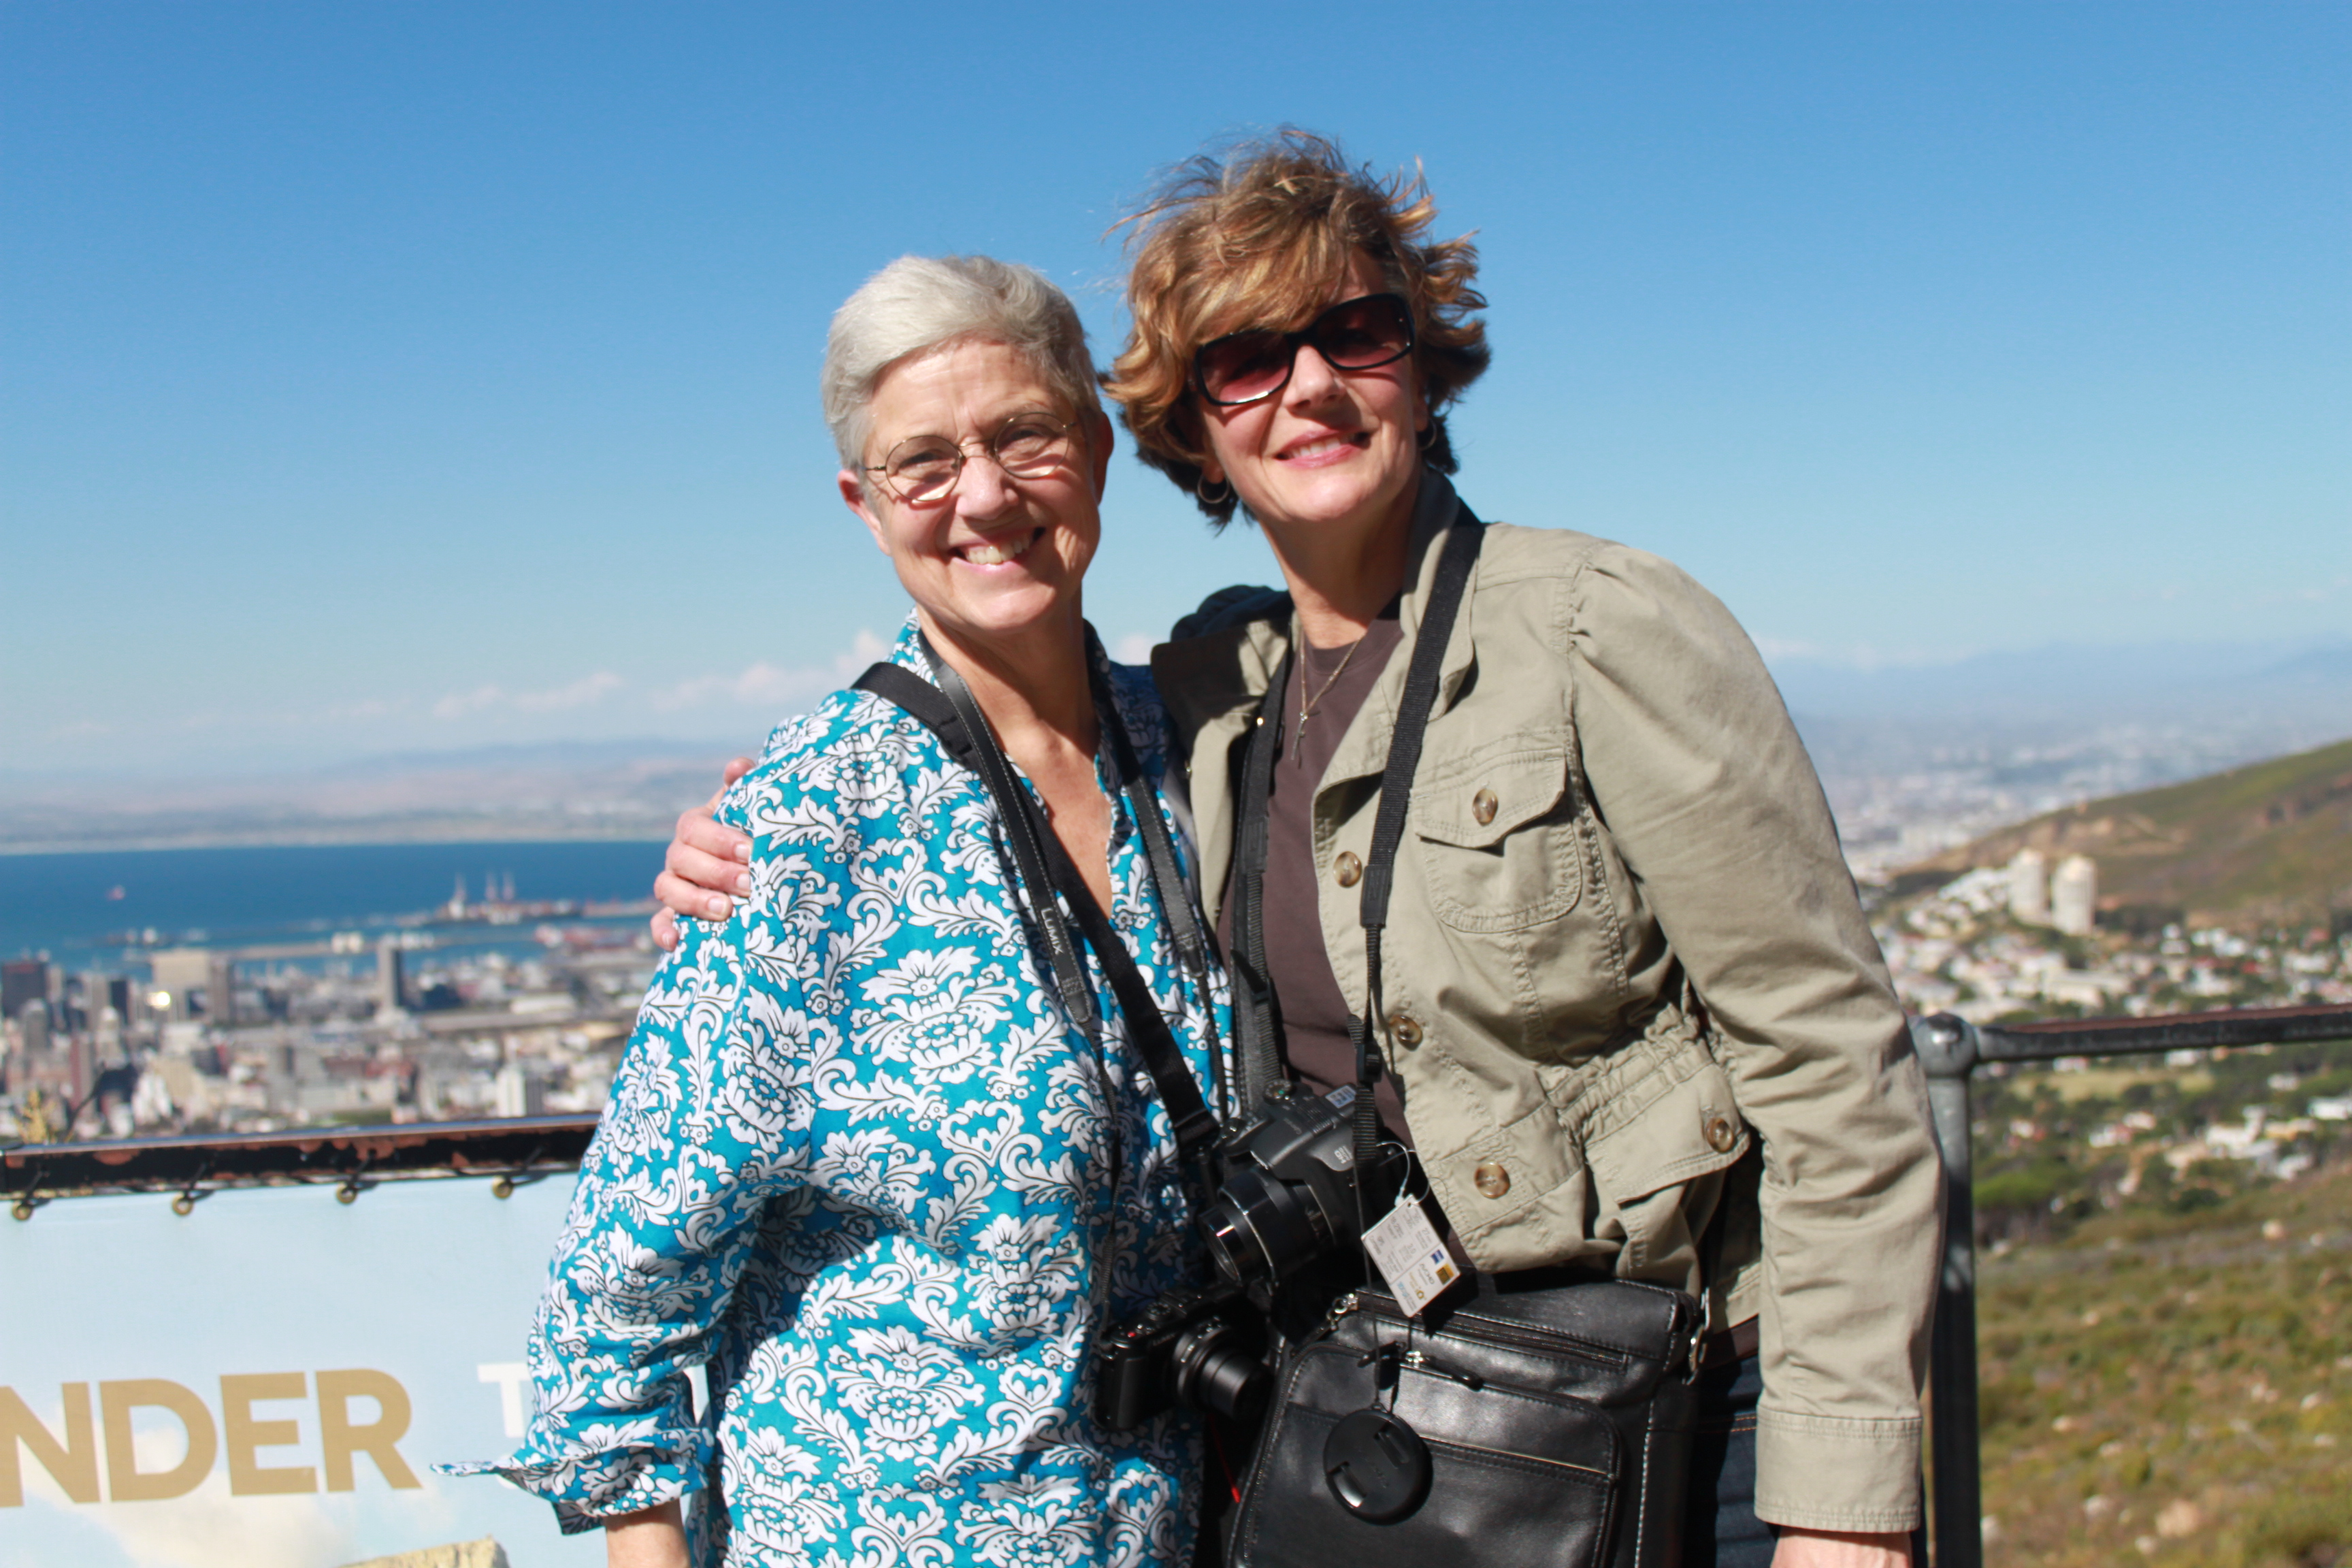 San Francisco lesbian philanthropists Tracy Gary, left, and Jody Cole, right, two of the 17 participants in Atlantic Philanthropies LGBT donor tour of South Africa. (Photo: Inka von Sternenfels)